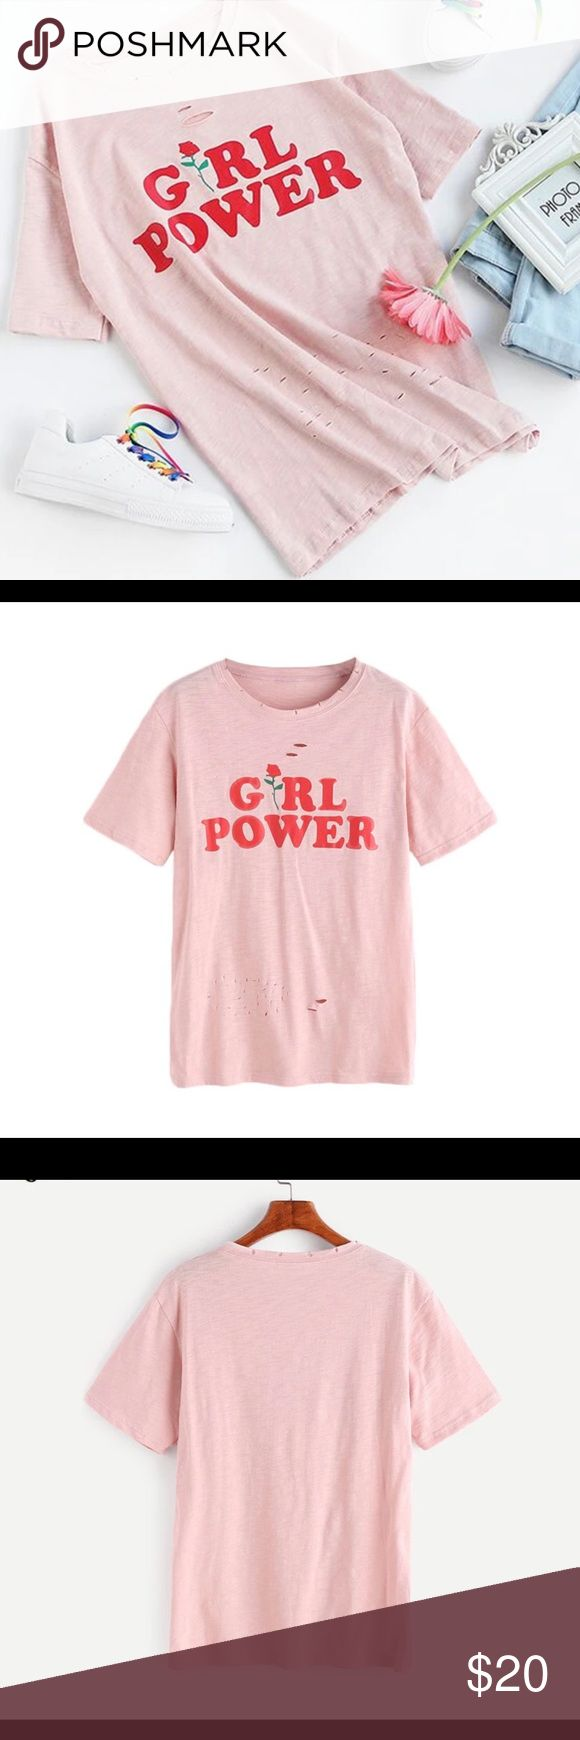 Pink Letter Rose Print Short Sleeve Ripped T-shirt Womens Tee Shirts Top Women Fashion Summer Ladies Pink Letter And Rose Print Short Sleeve Ripped T-shirt. Find it cheaper in my ebay 👉🏻 12.00$ + free shipping.  https://www.ebay.com/i/263222373635 ROMWE Tops Tees - Short Sleeve